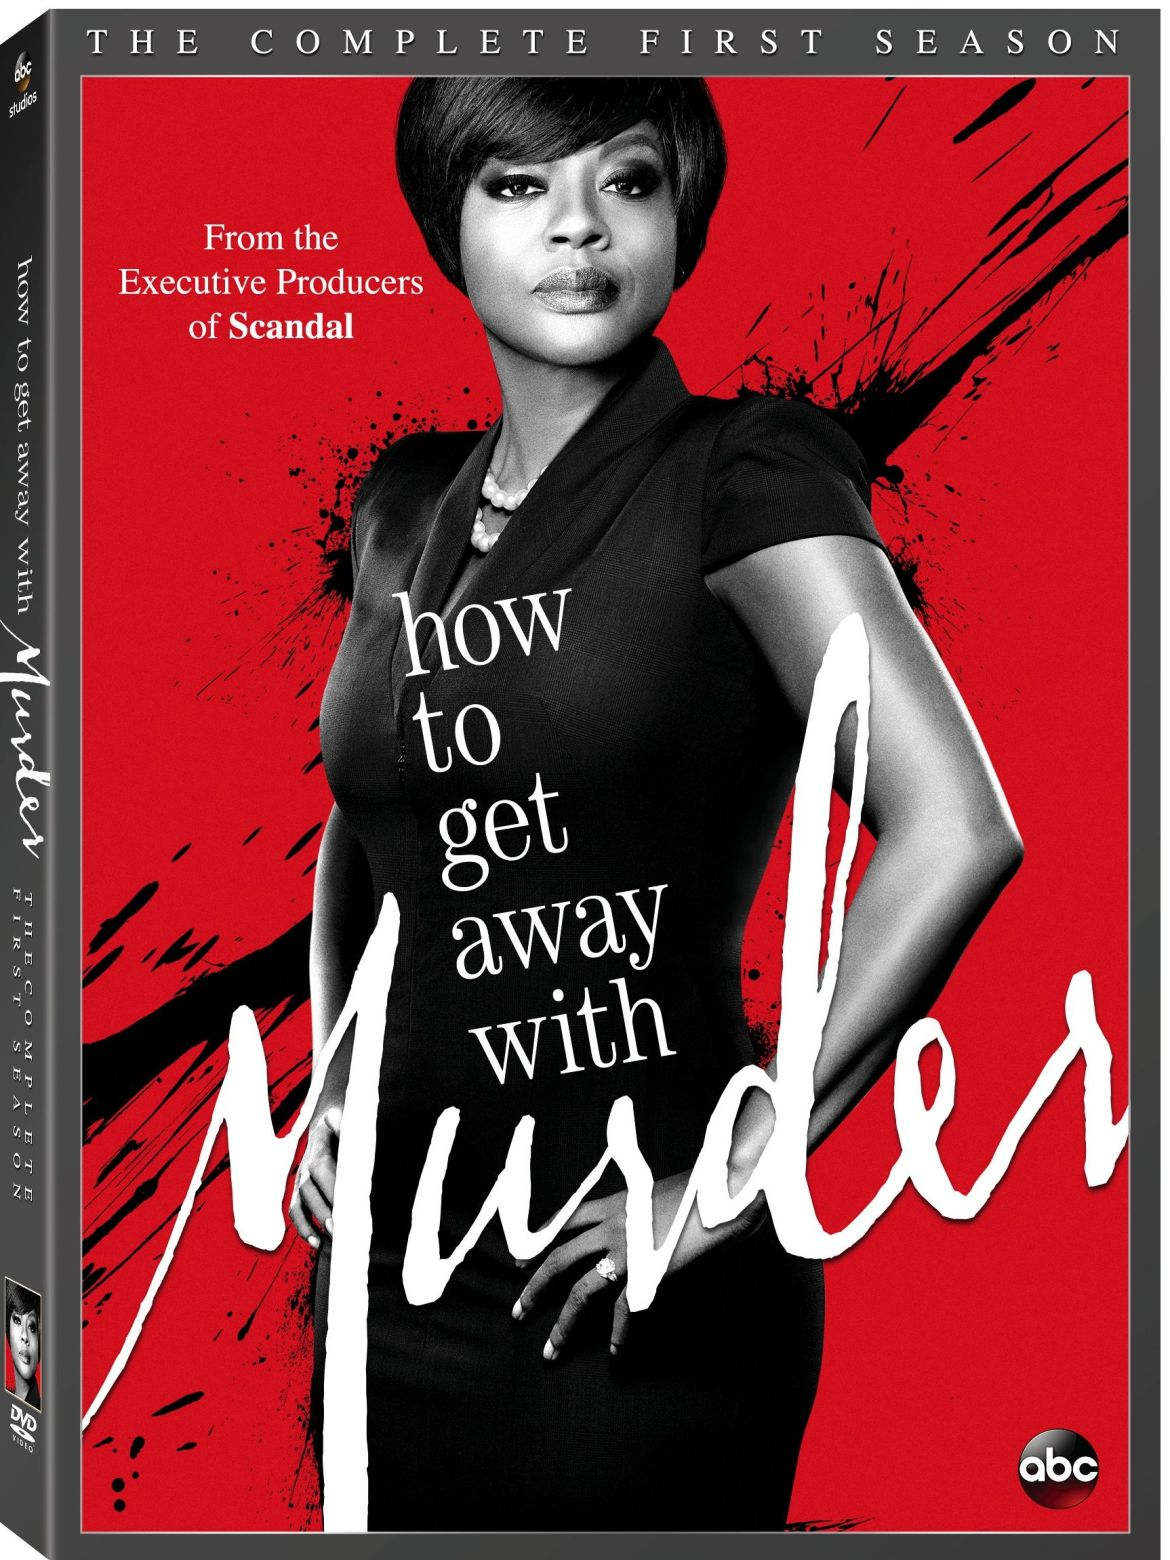 How To Get Away With Murder: The Complete First Season on DVD August 4th!